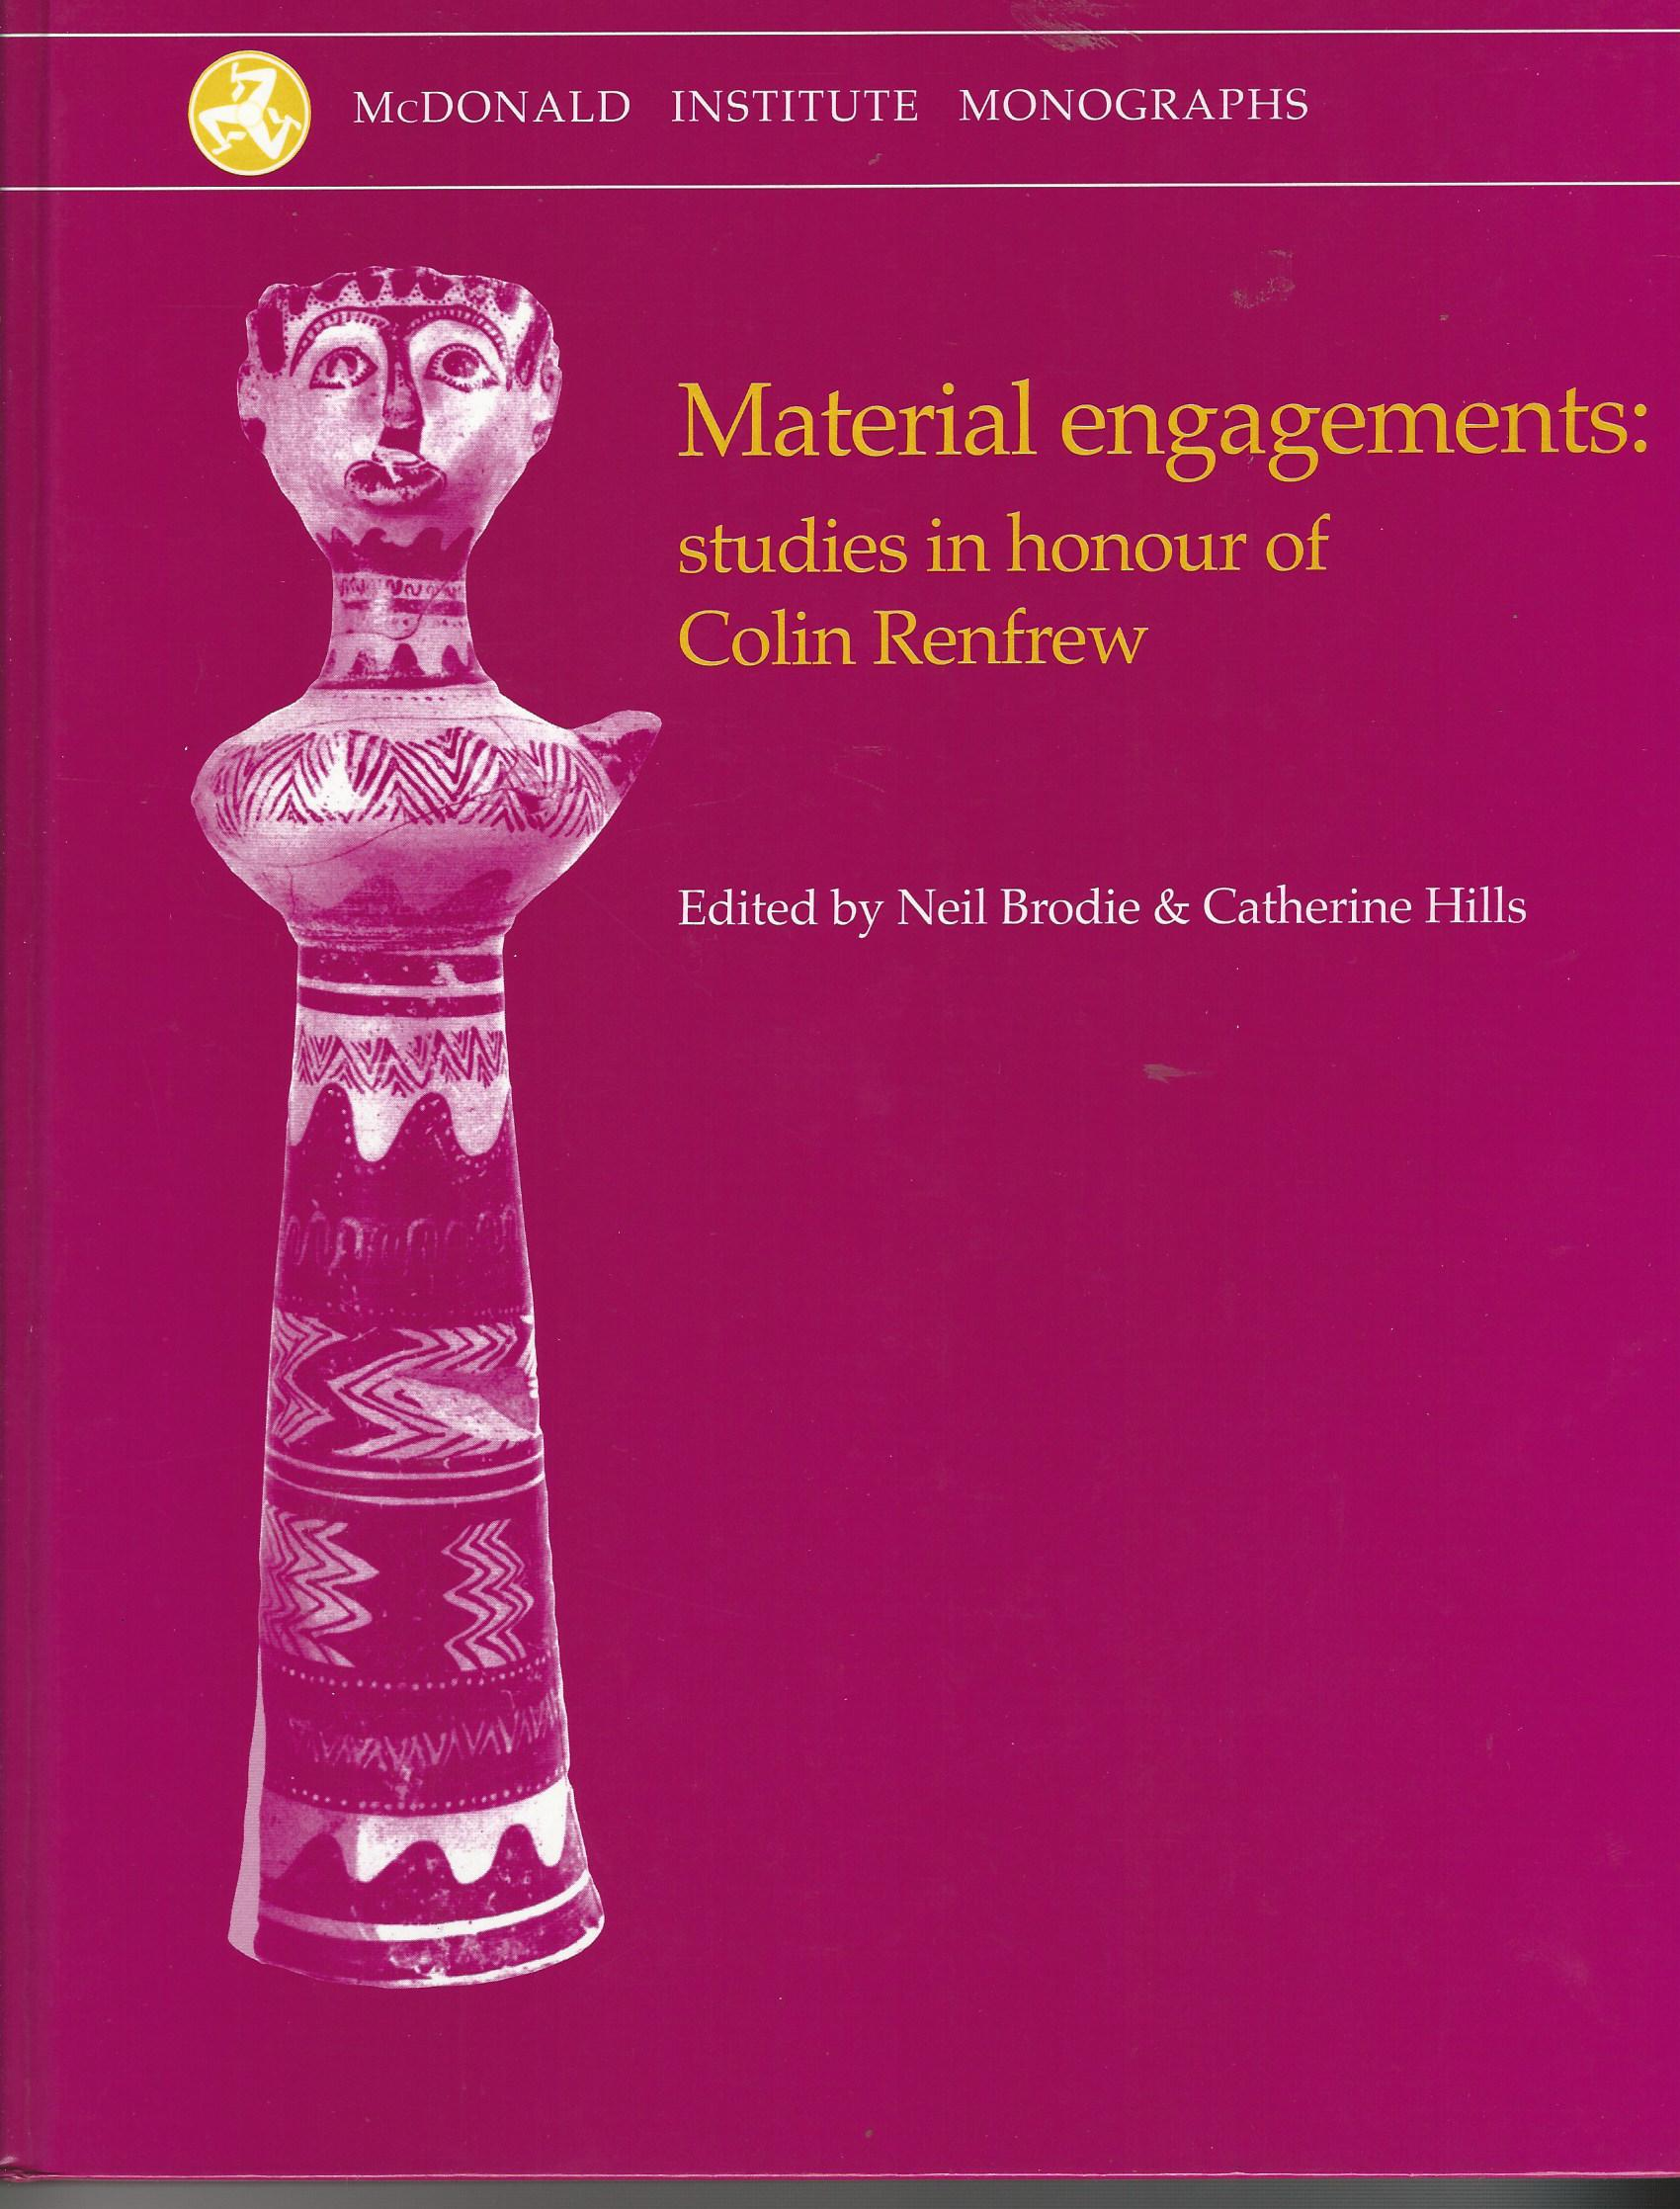 Image for Material Engagements: Studies in honour of Colin Renfrew (McDonald Institute Monographs)